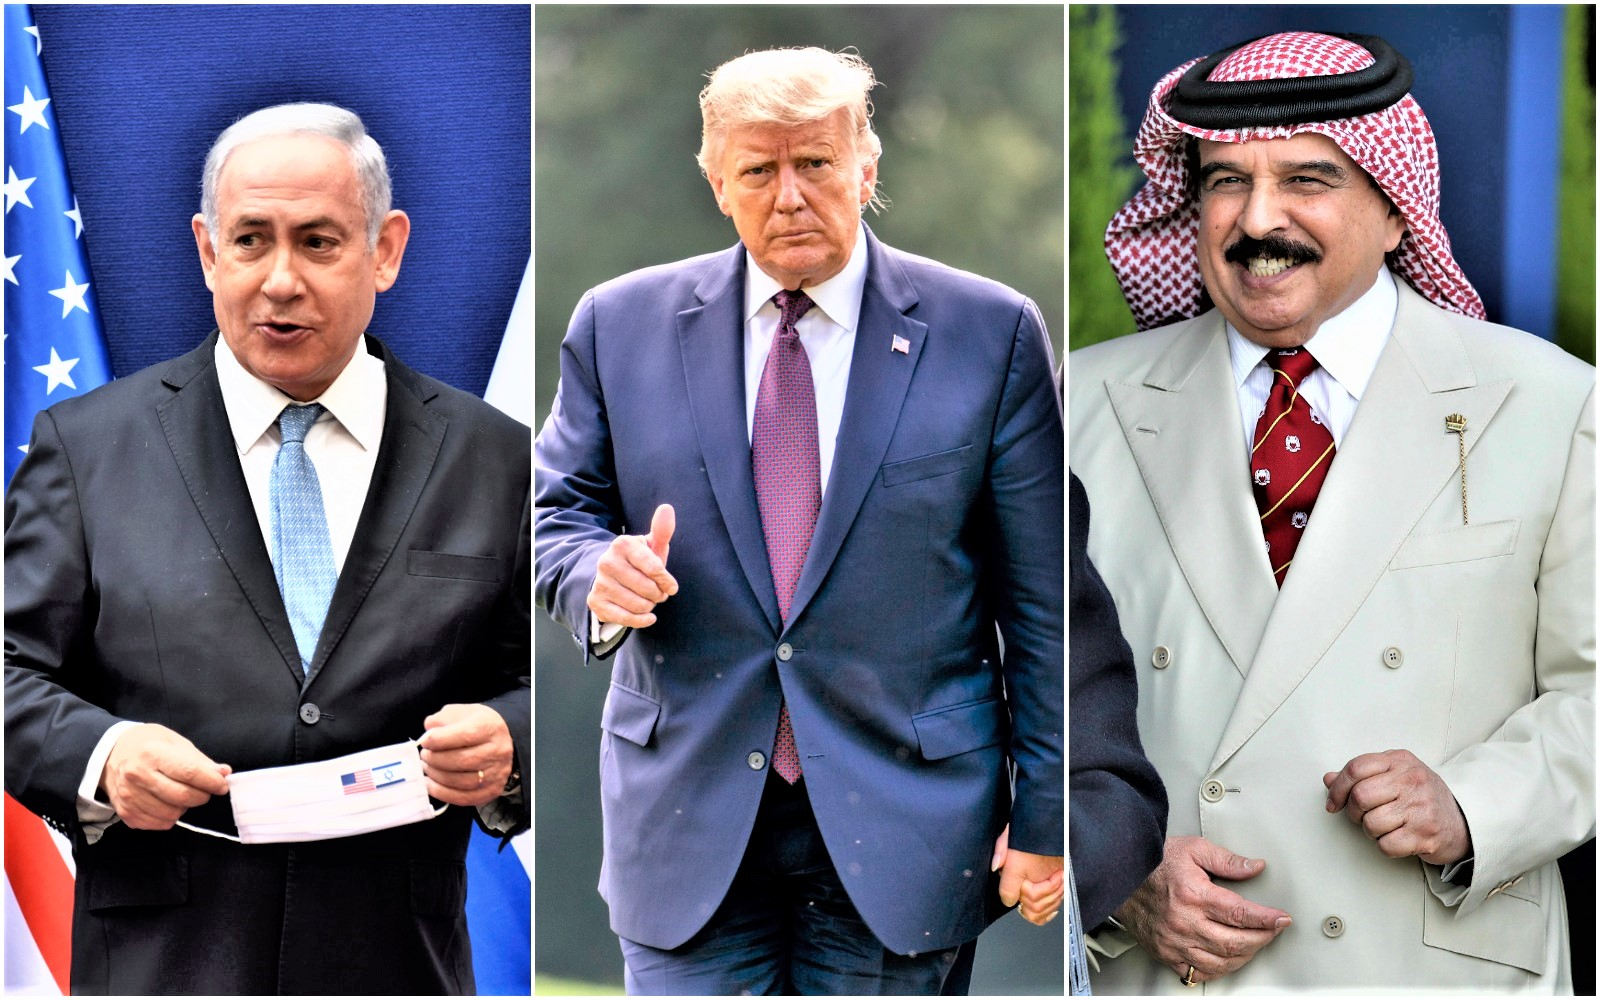 Israel and Bahrain Peace agreement signed  on September 11th, Means Middle East Peace and Reconciliation process is encouraging